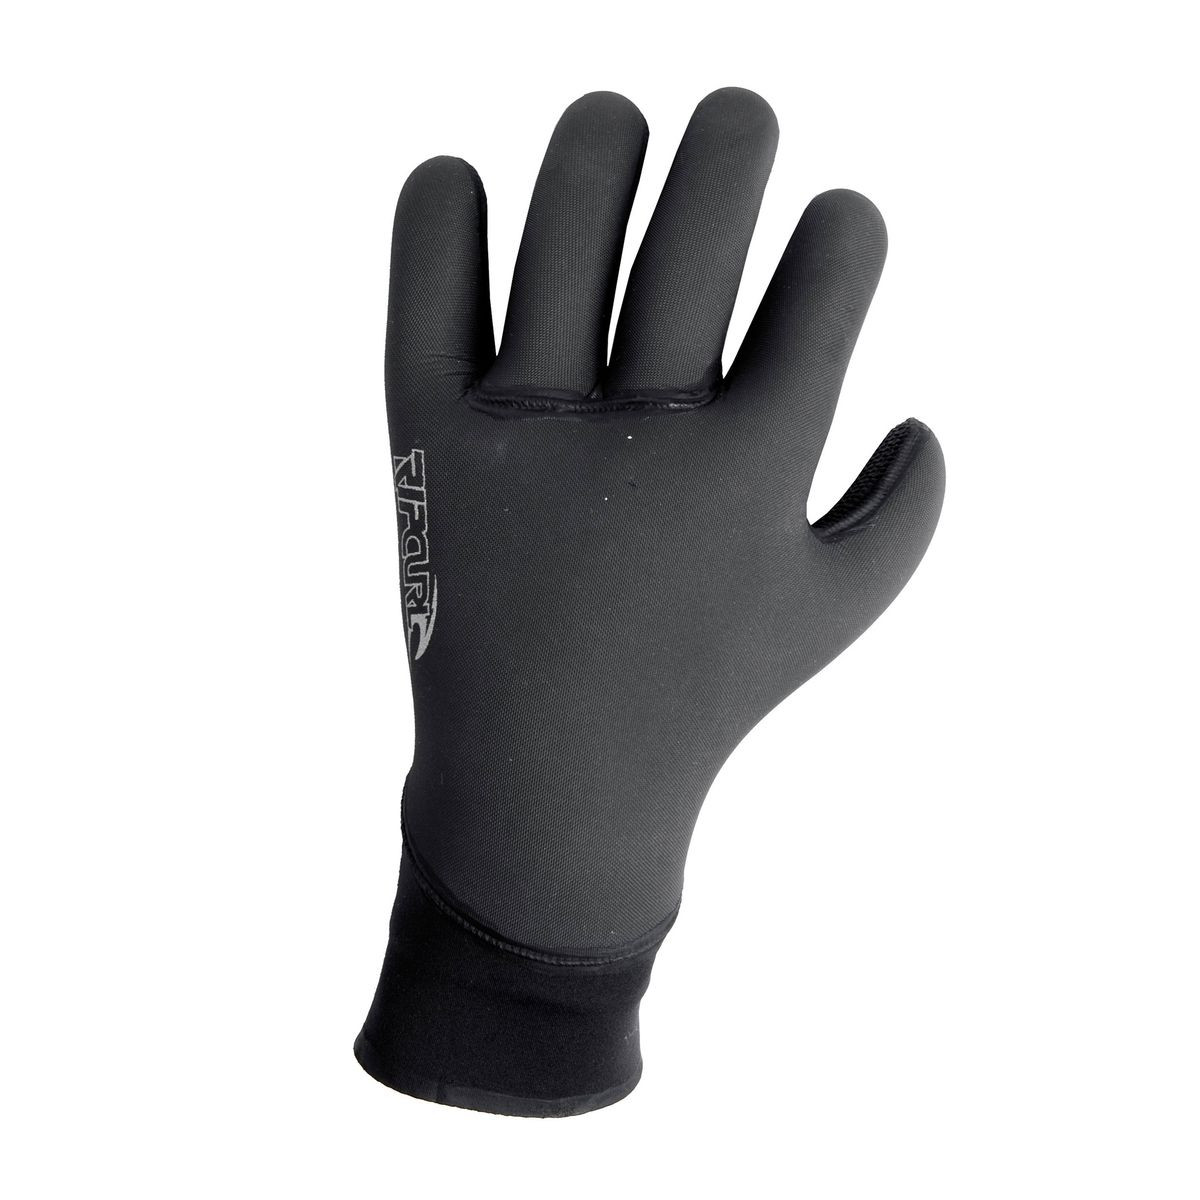 Rip Curl Flashbomb 5/3mm 5 Finger Wetsuit Gloves - Black